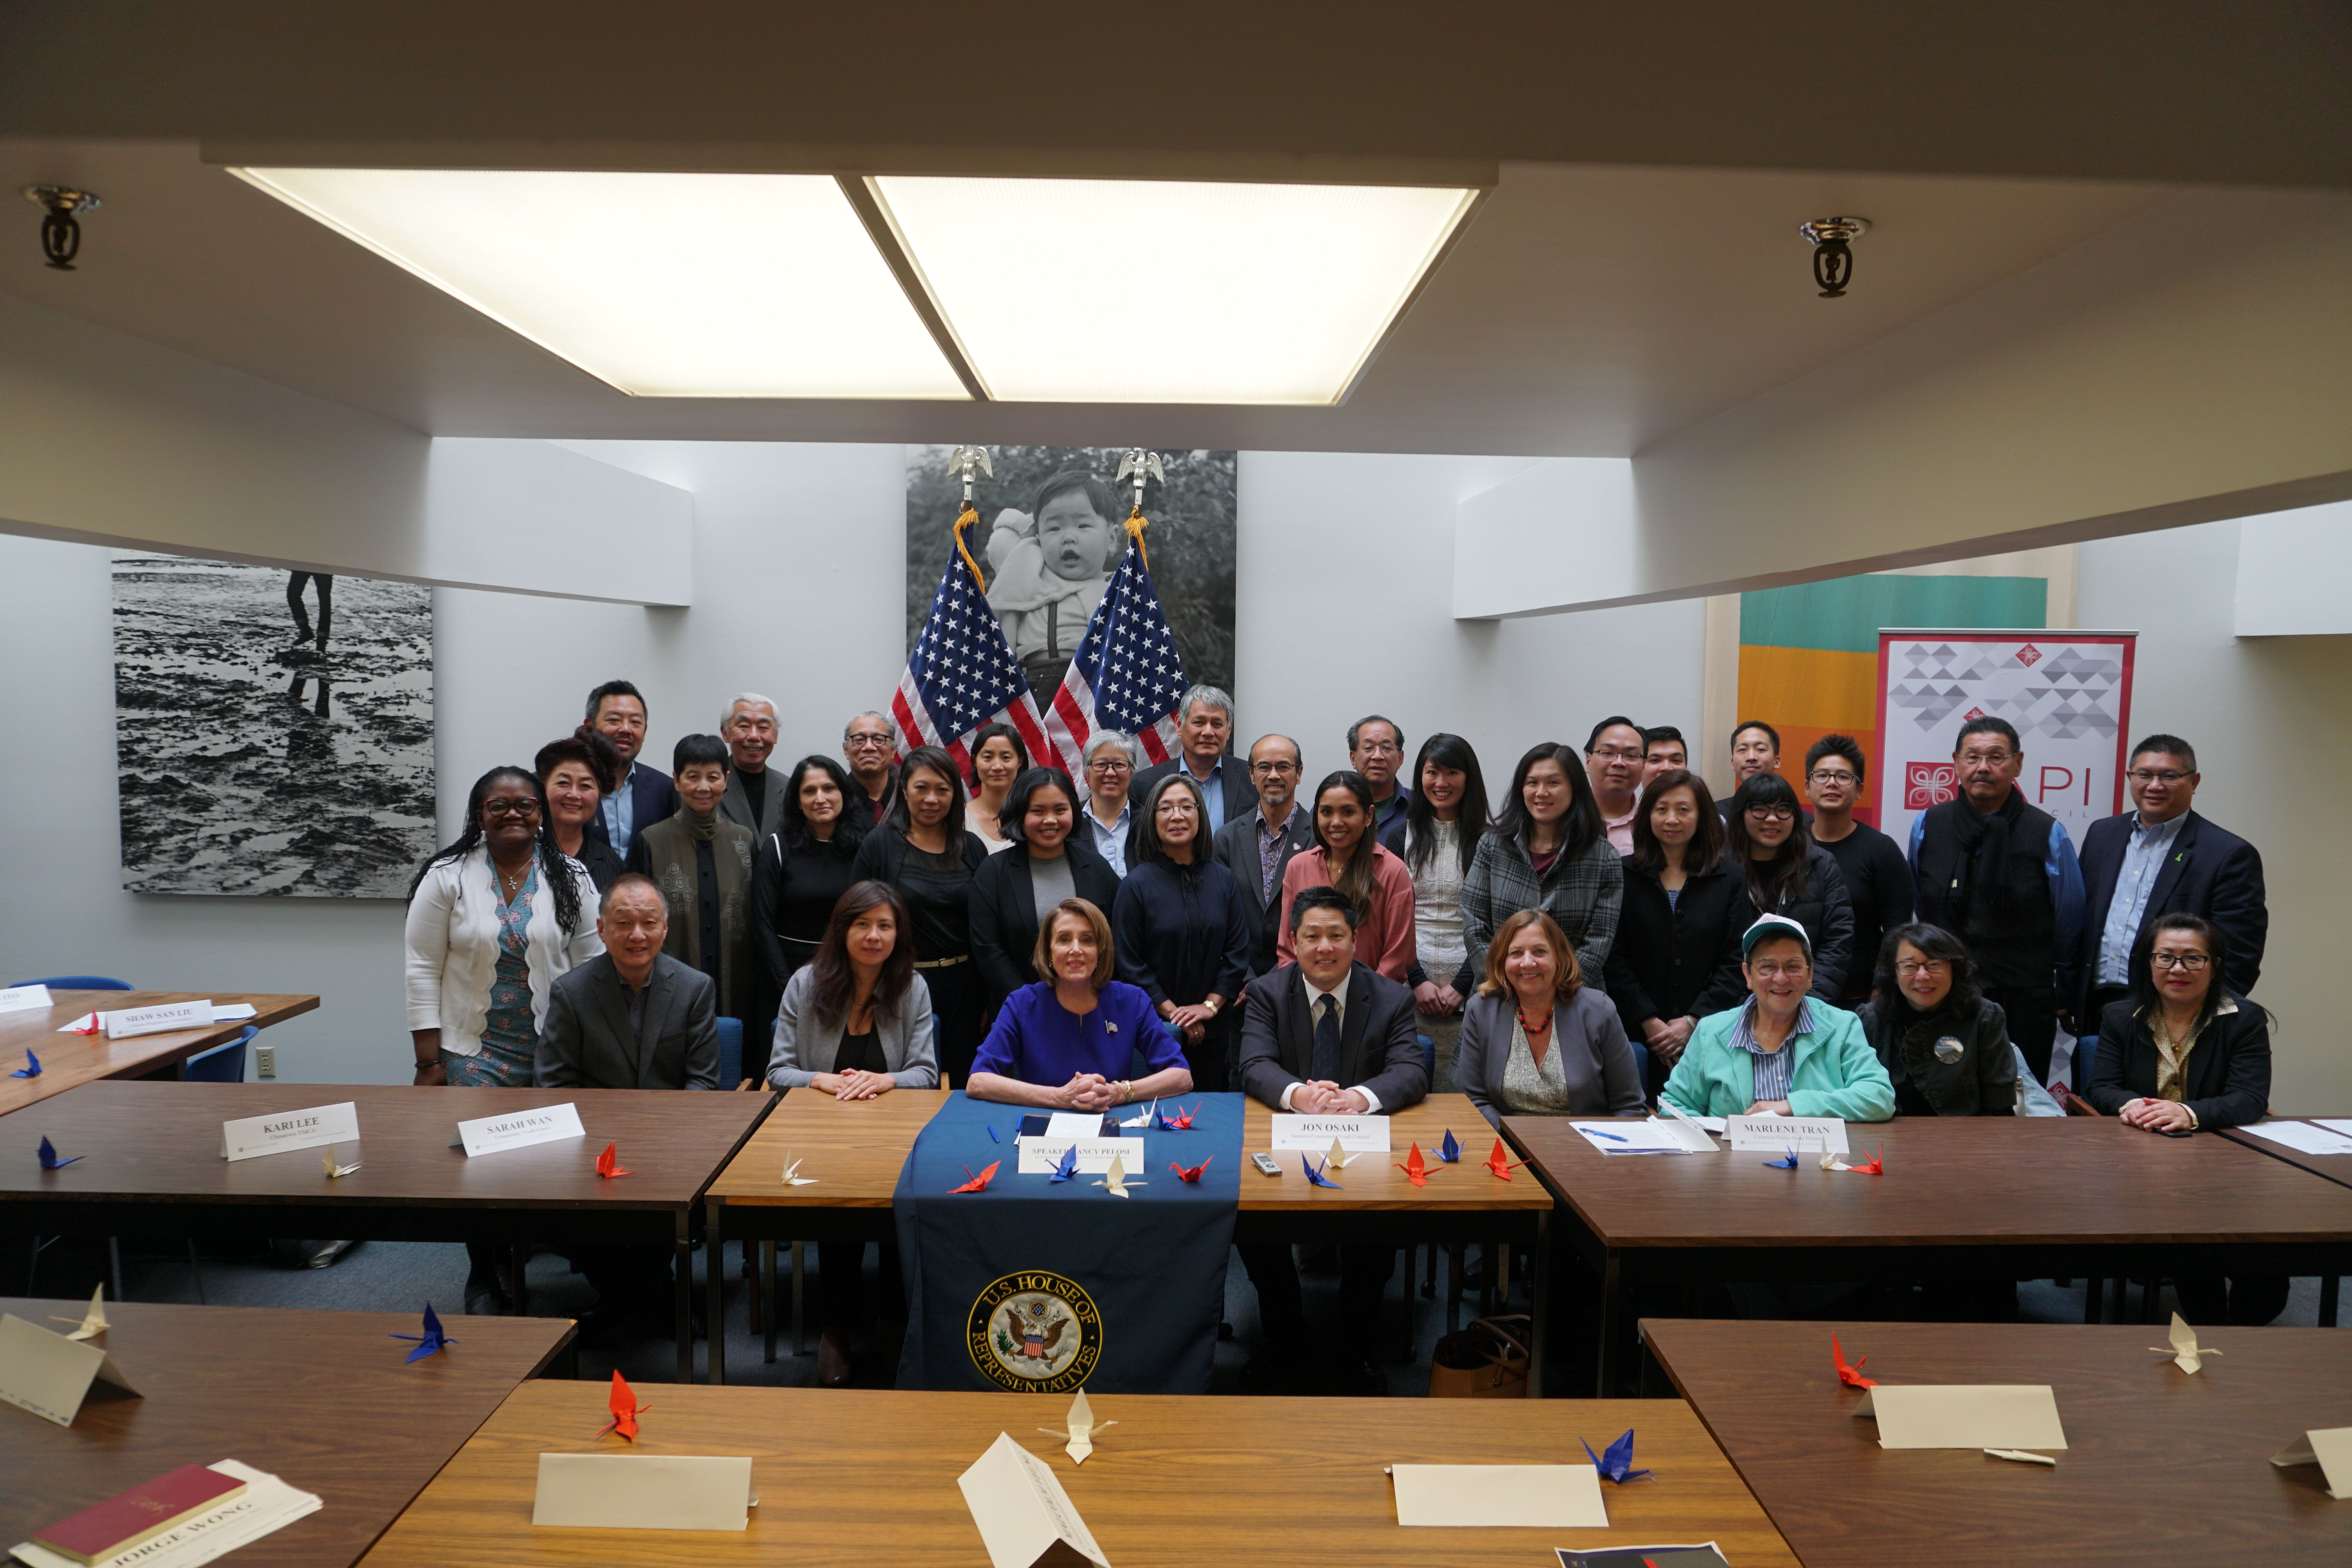 Congresswoman Nancy Pelosi hosts an AAPI roundtable discussion on the census, comprehensive immigration reform, and healthcare, joined by members of the San Francisco Asian Pacific Islander Council.